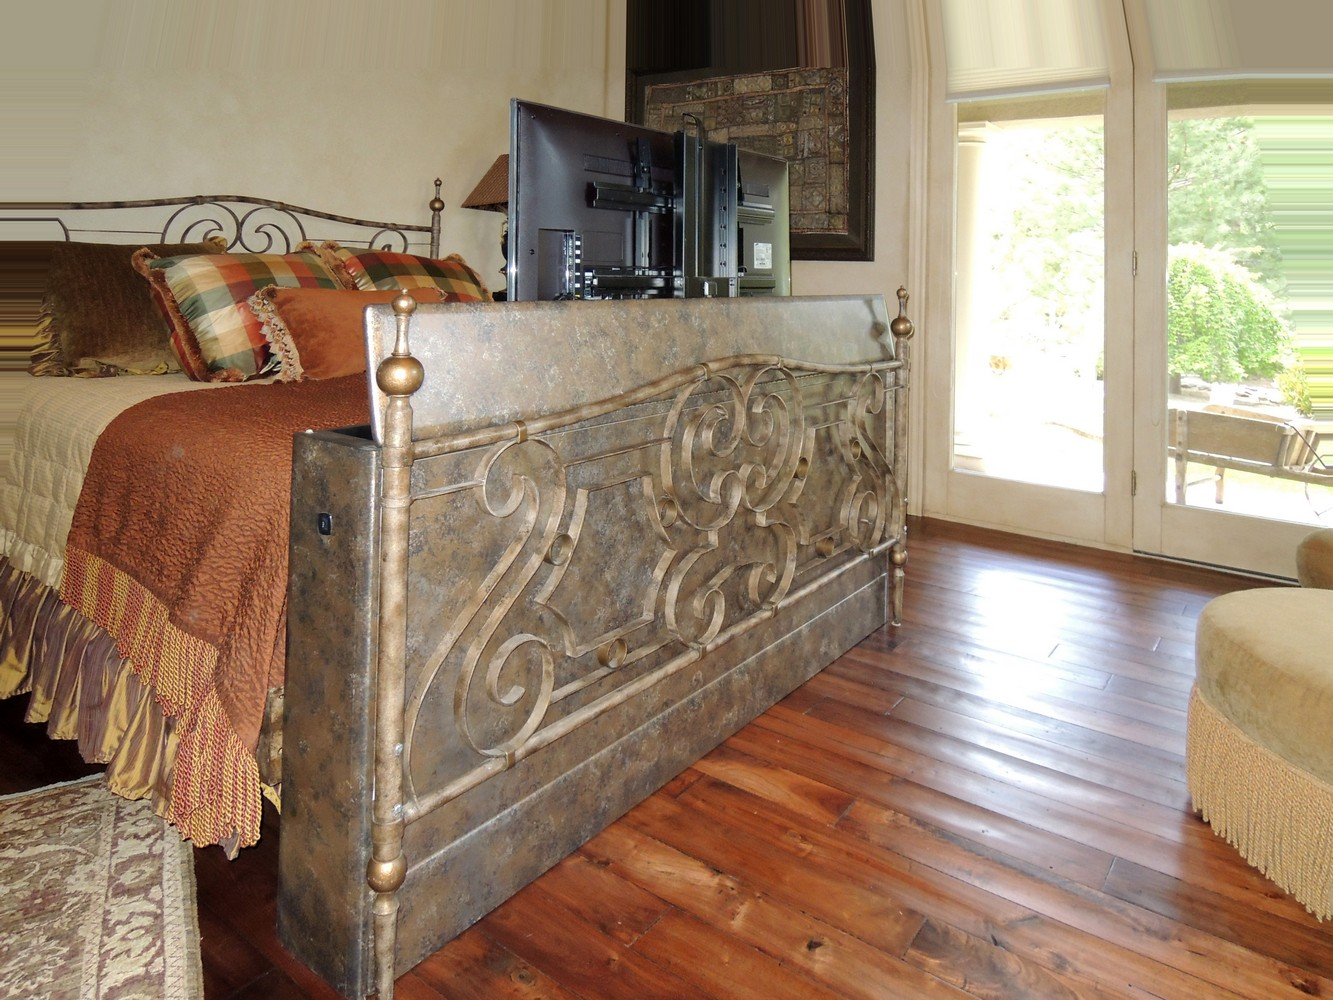 faux finished cabinet made for motorized tv lift at the end of the bed